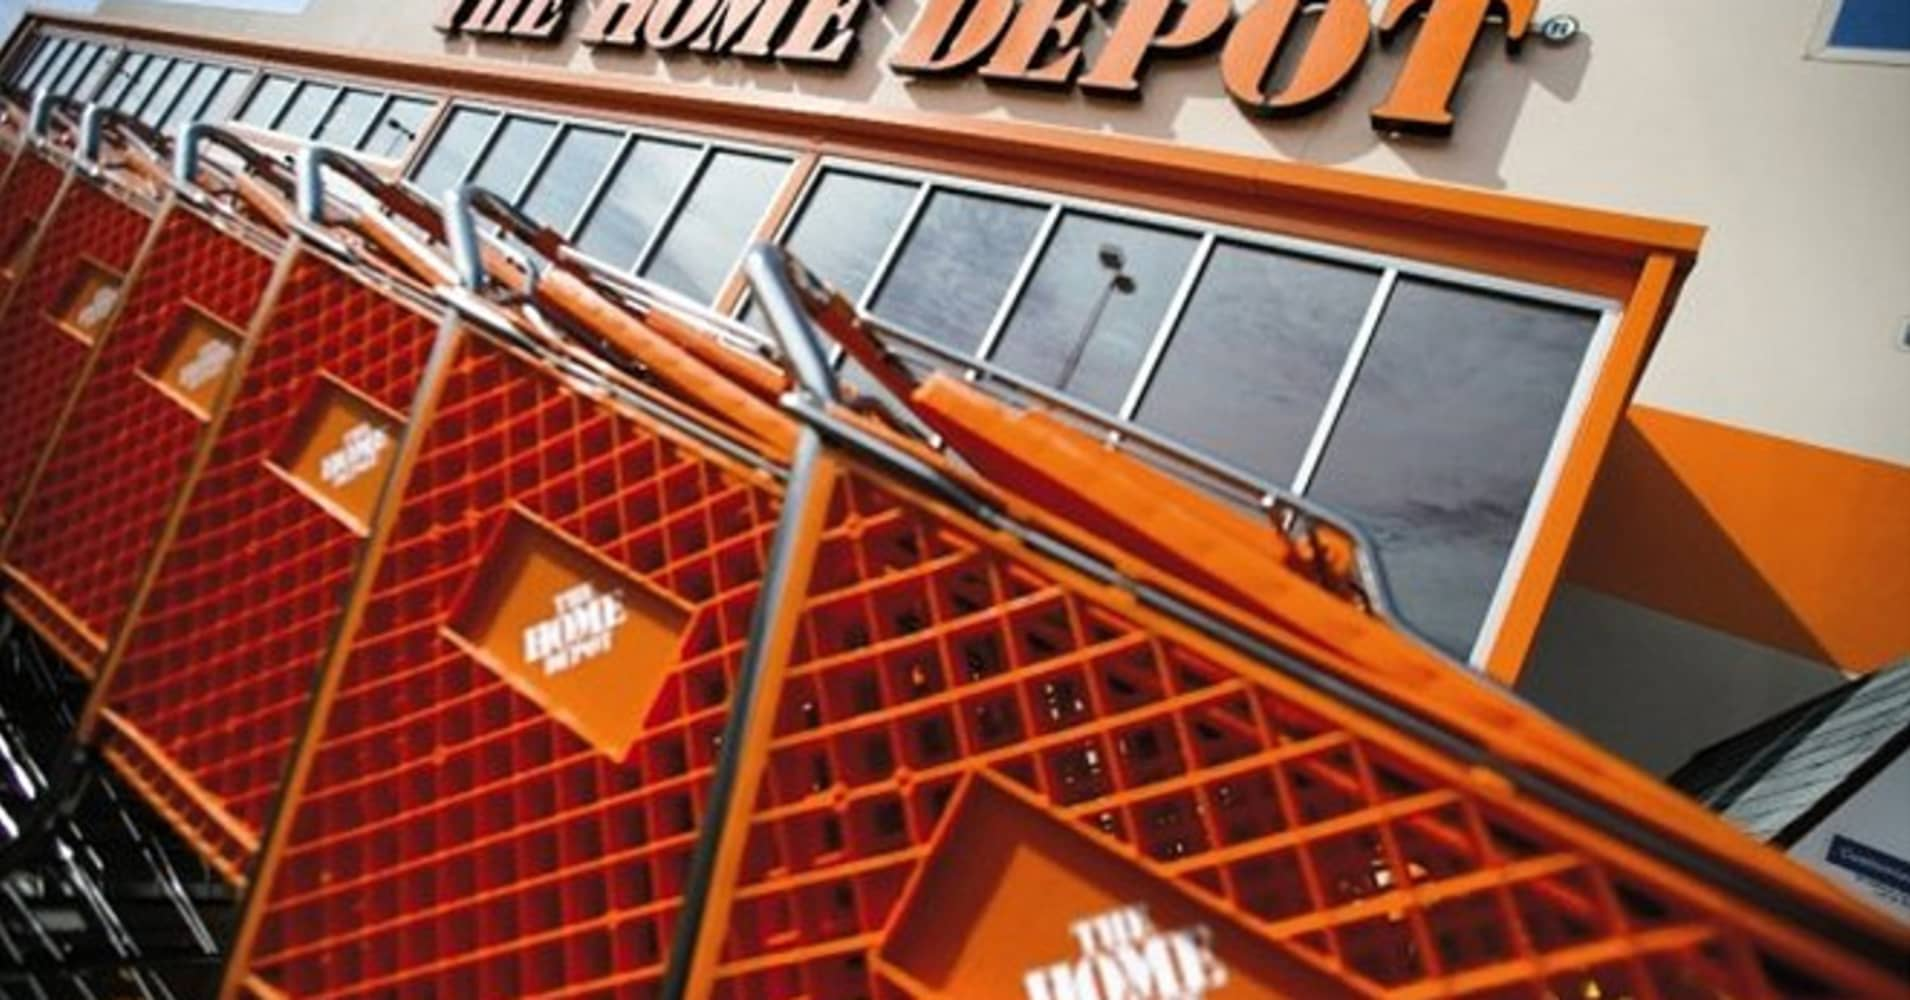 home depot posts earnings of 95 cents a share vs 90 cents estimate